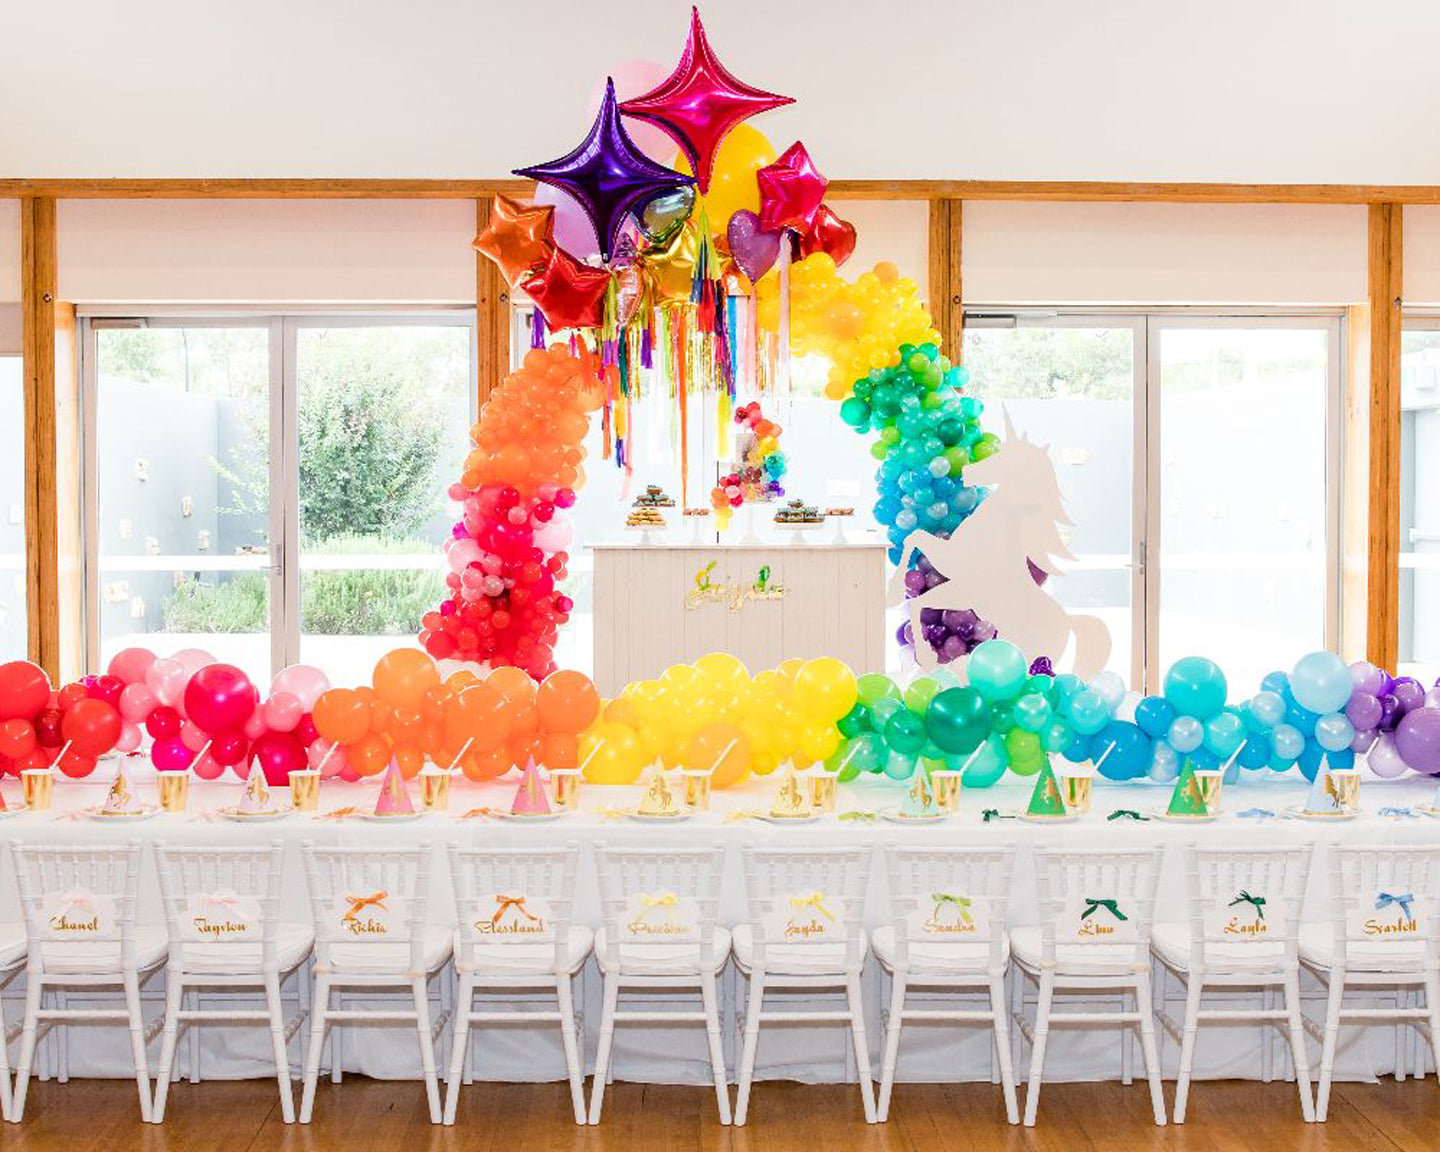 Unicorn Party setup with Kids Table and Rainbow balloon party decorations